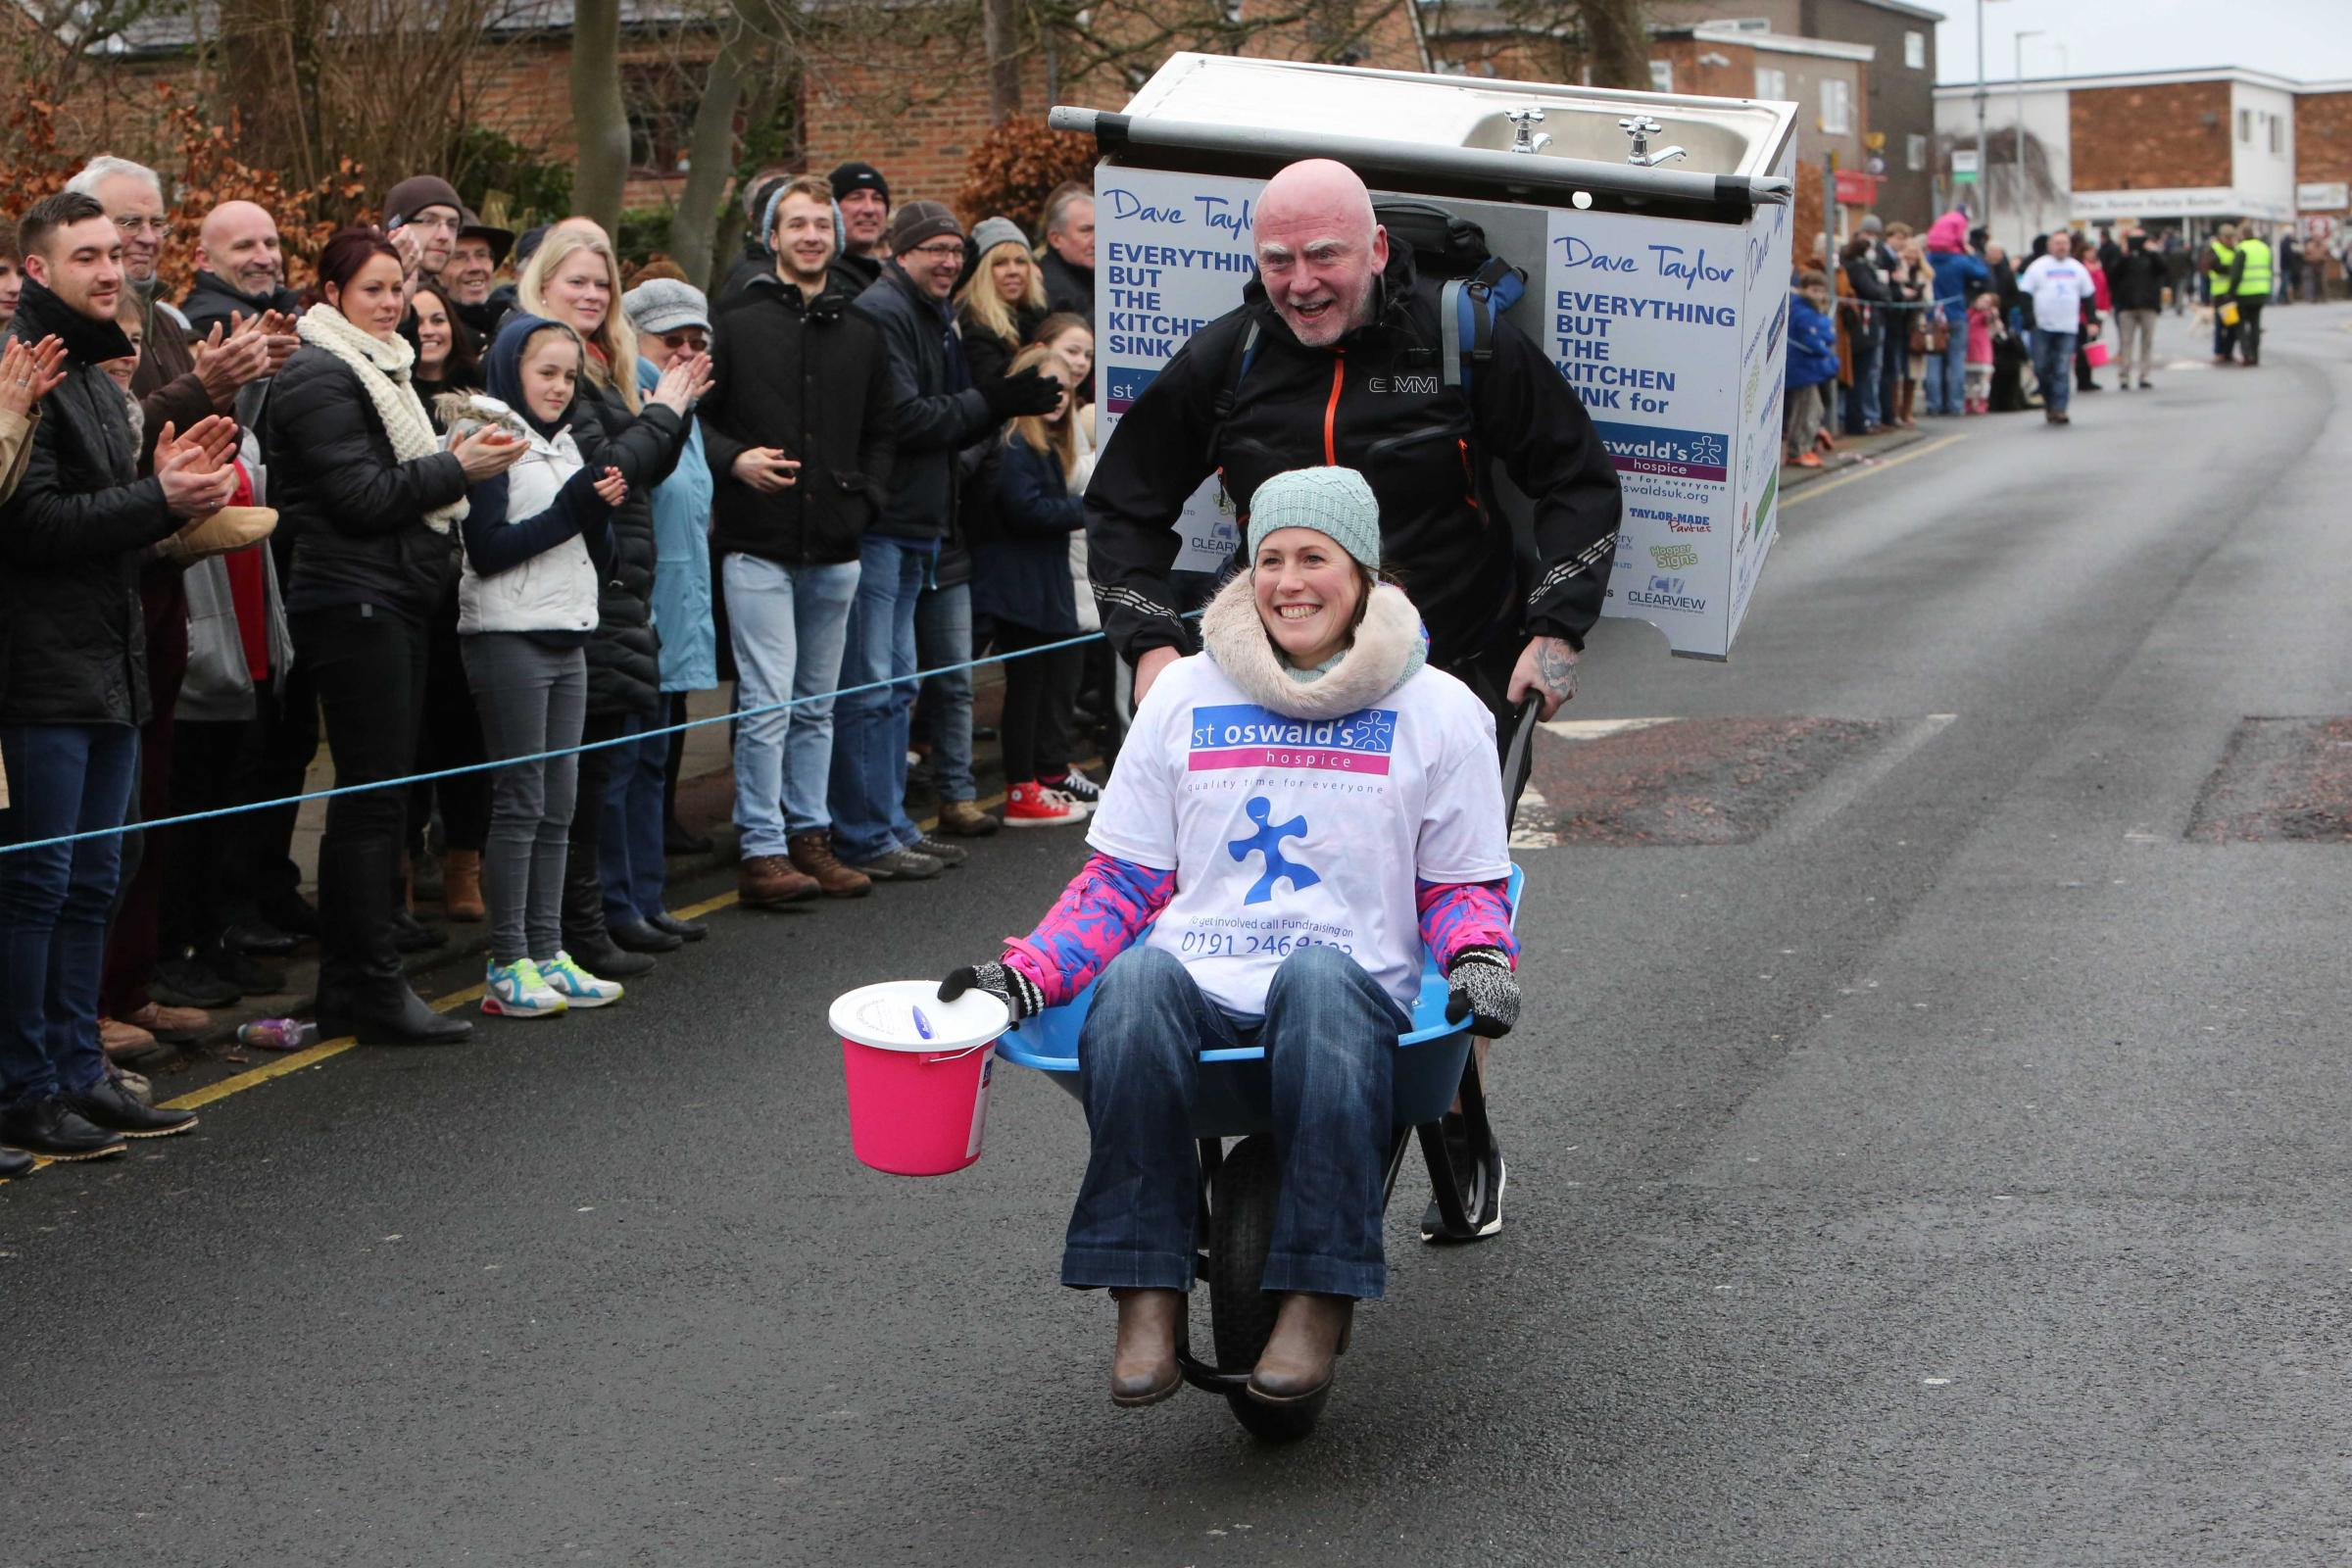 The Ponteland Wheelbarrow Race raises money for good causes.